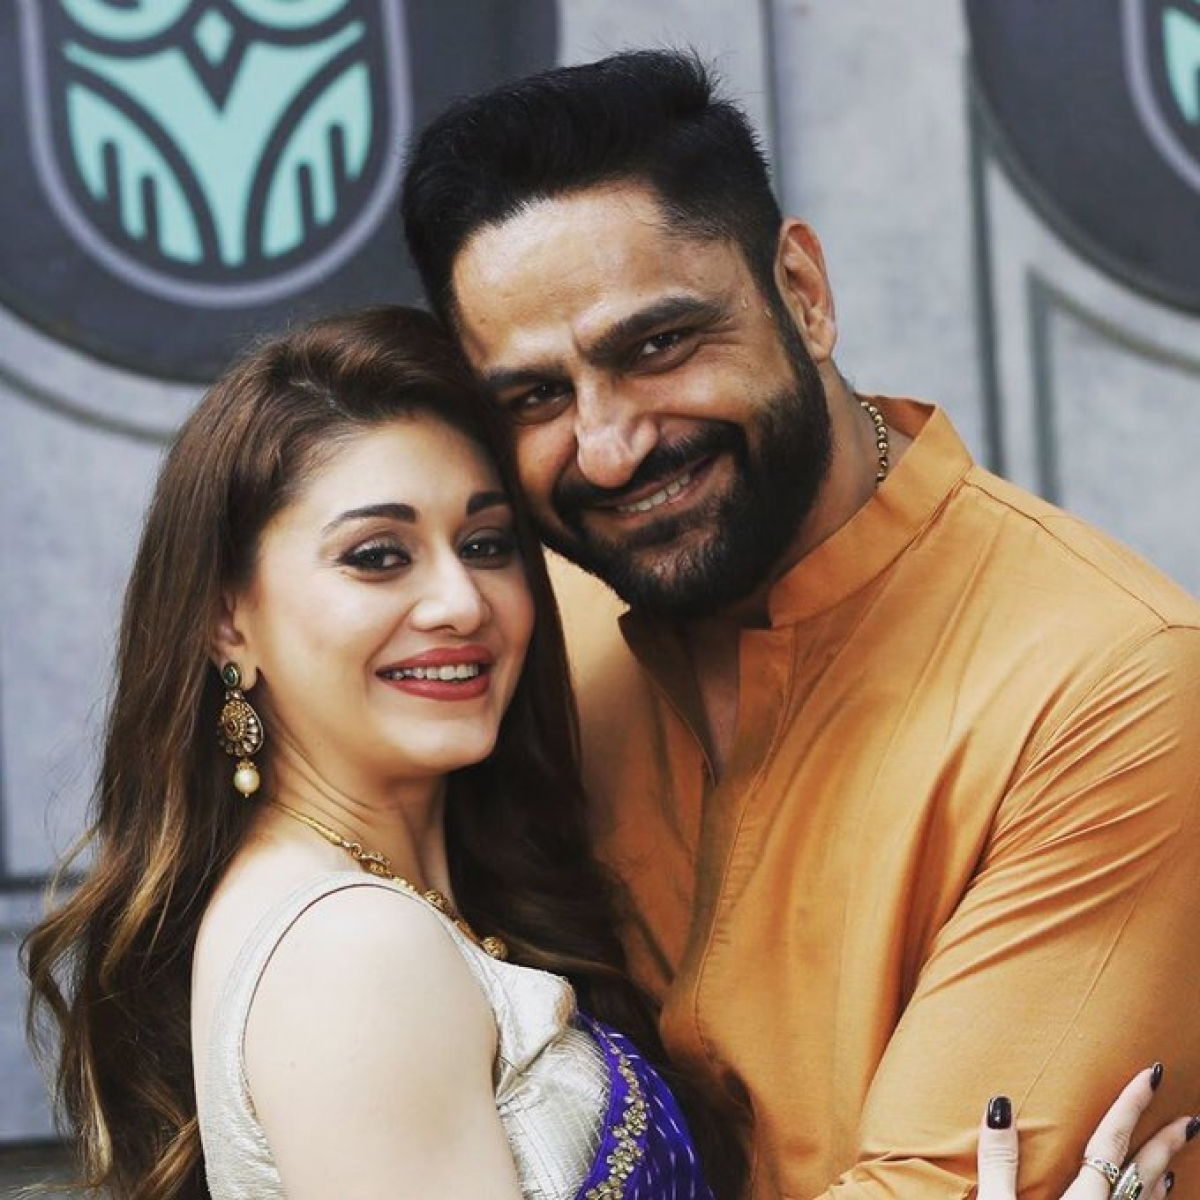 Bigg Boss 13: TV actor Parag Tyagi slams Asim Riaz for misbehaving with wife Shefali Jariwala